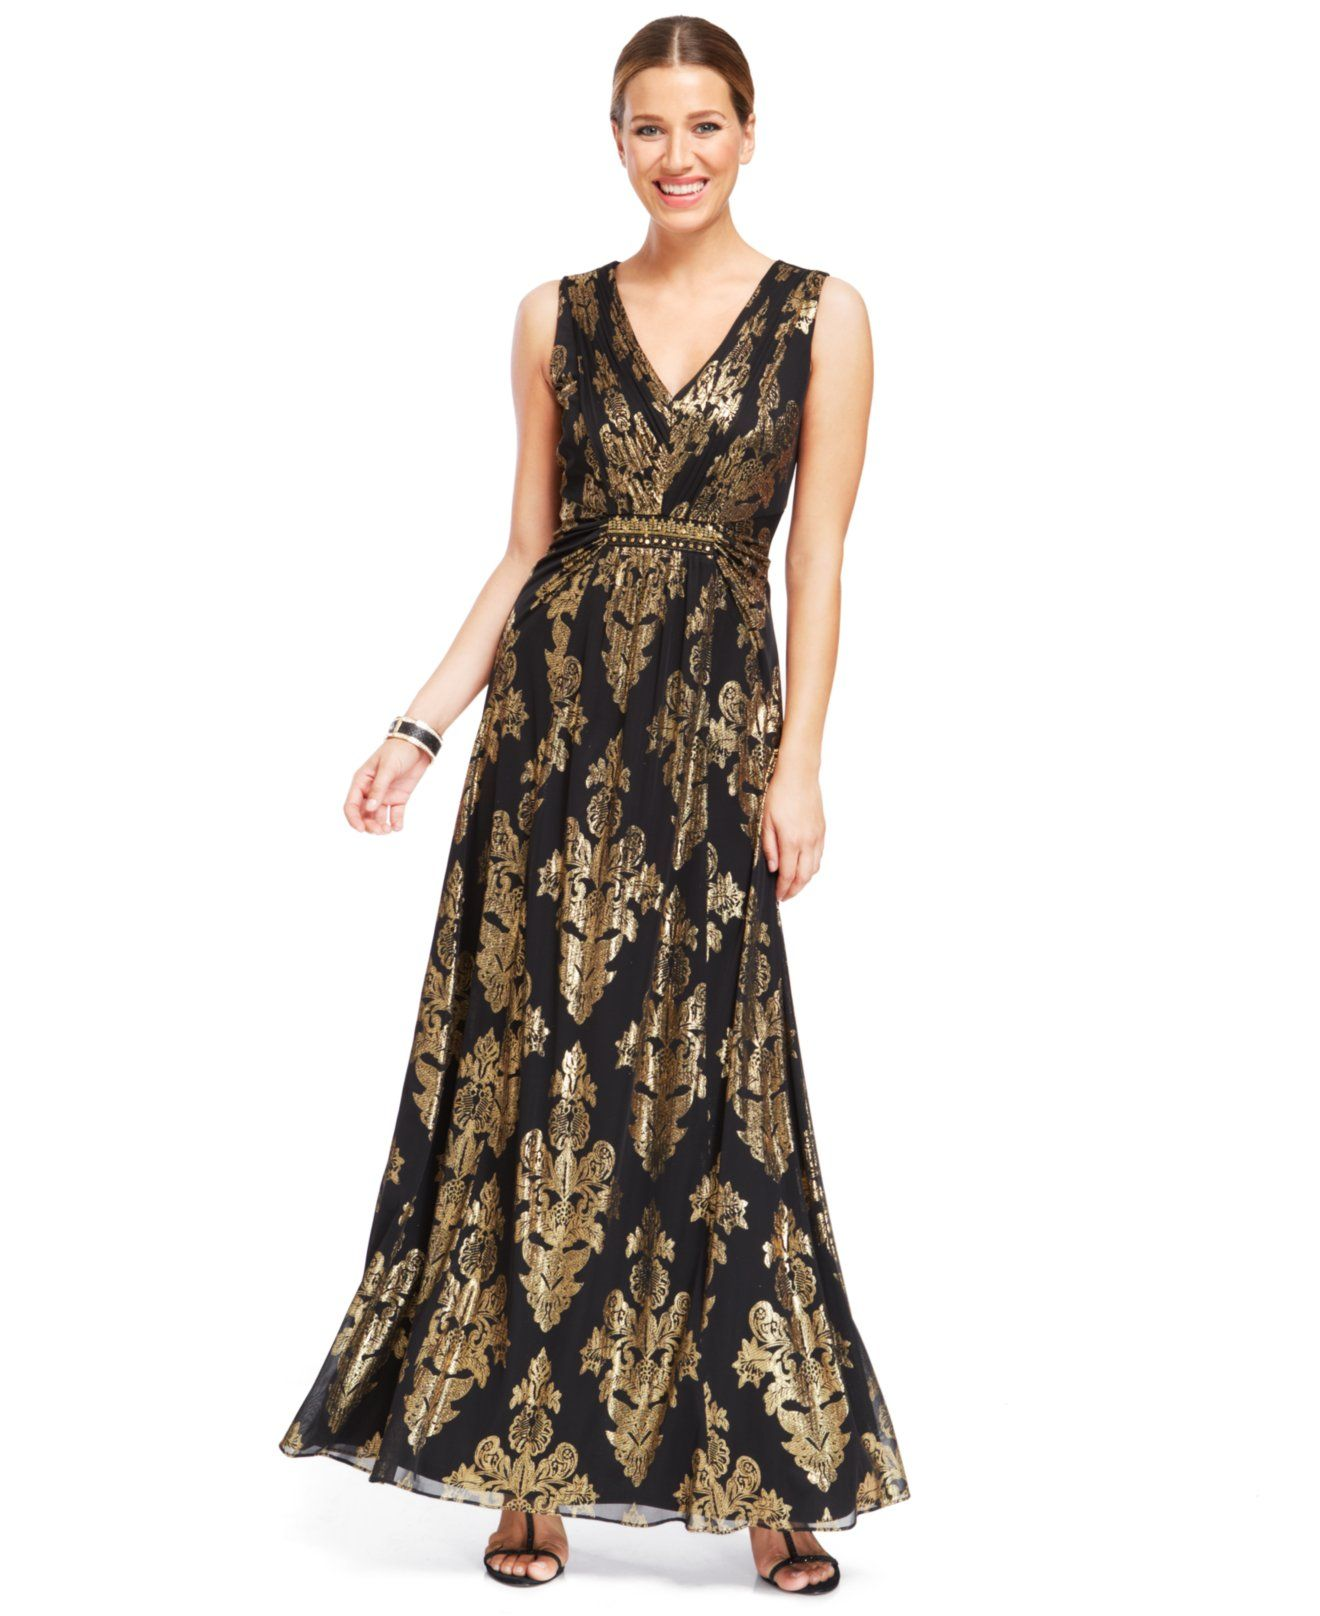 Macy's Christmas Party Dresses | Dress images